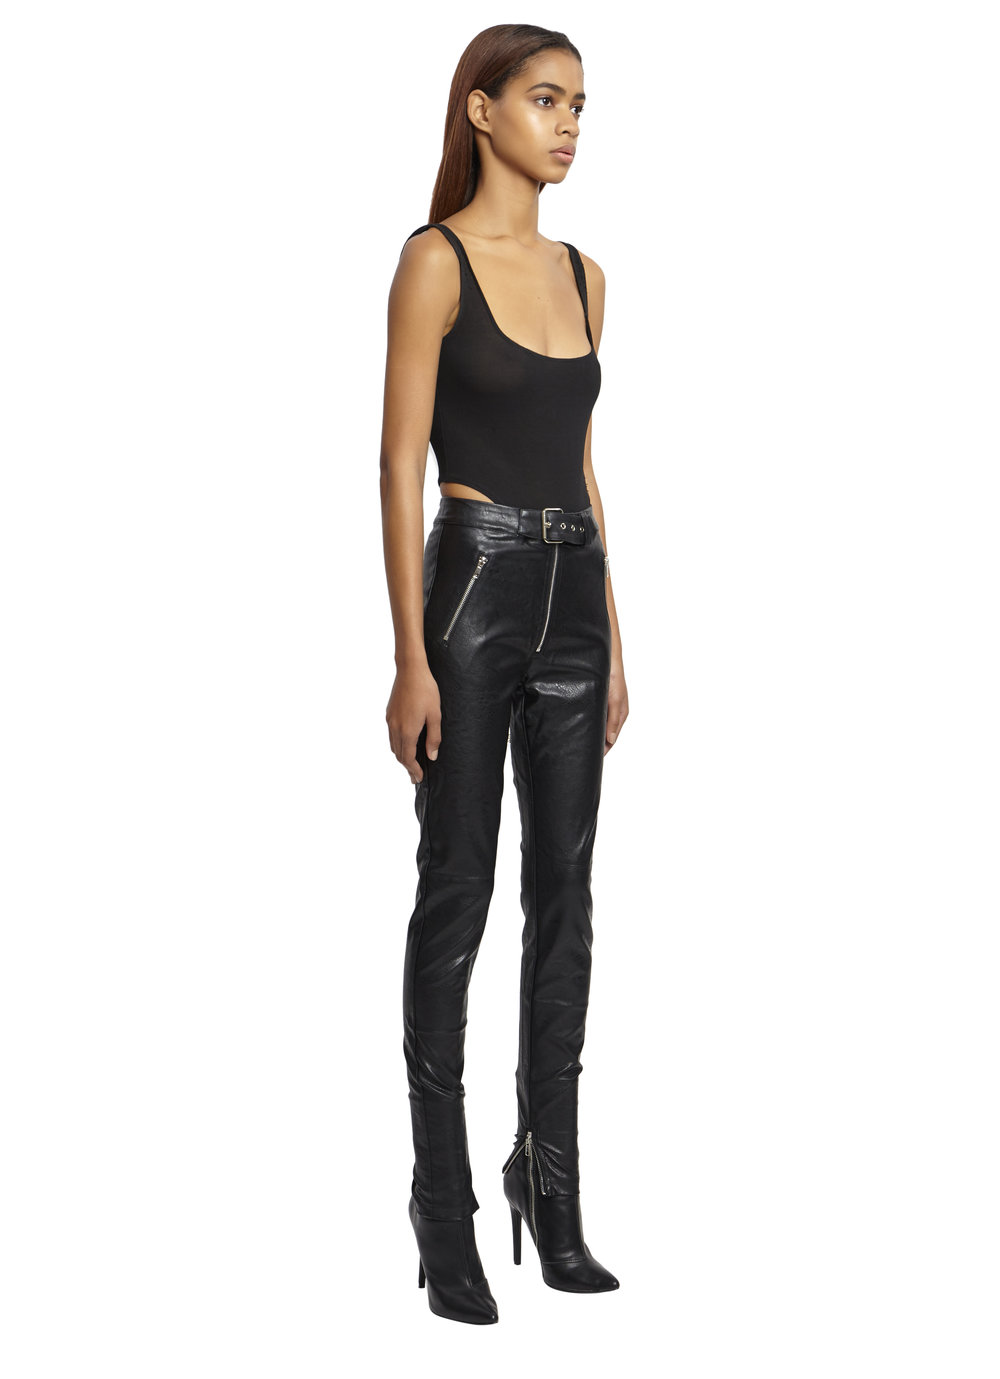 BELTED LEATHER PANTS by Danielle Guizio, available on danielleguiziony.com for $188 Kylie Jenner Pants Exact Product